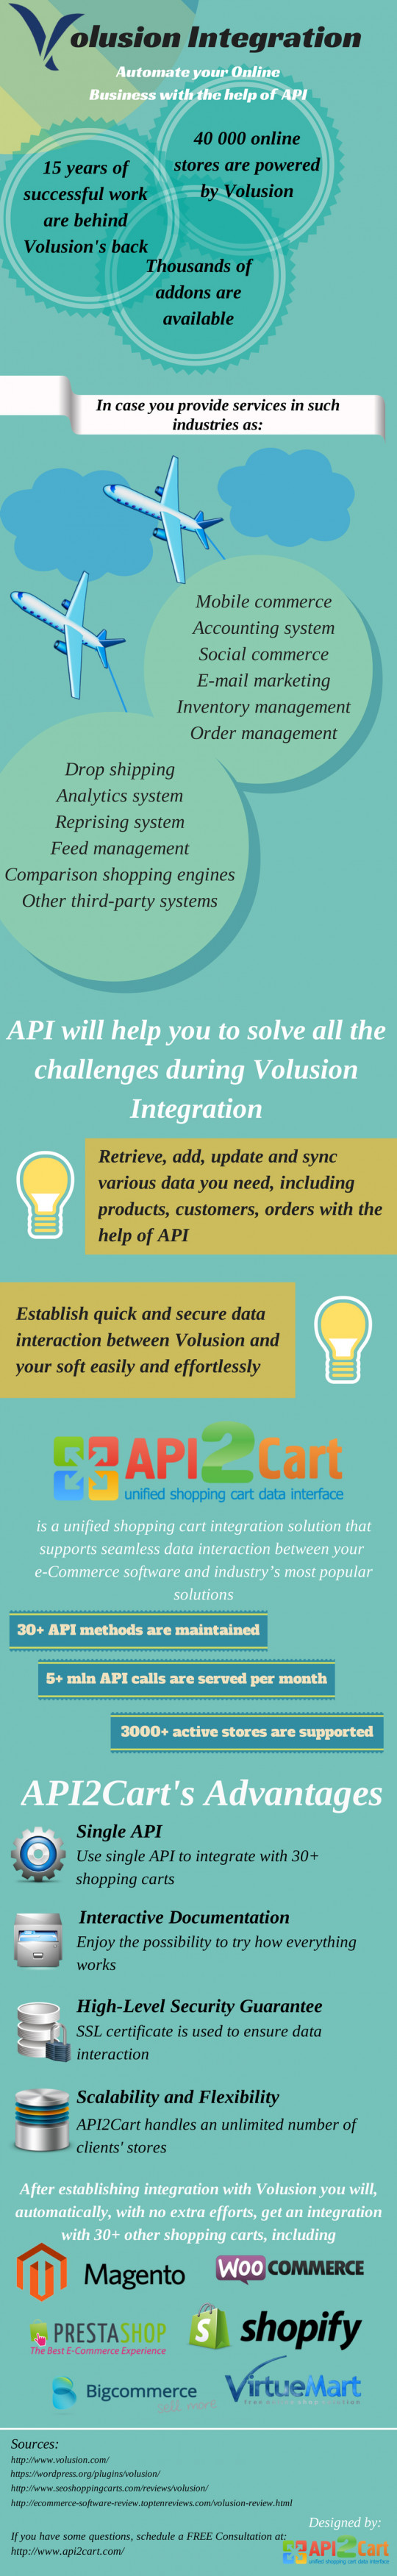 Volusion Integration: Automate your Online Business with the Help of API